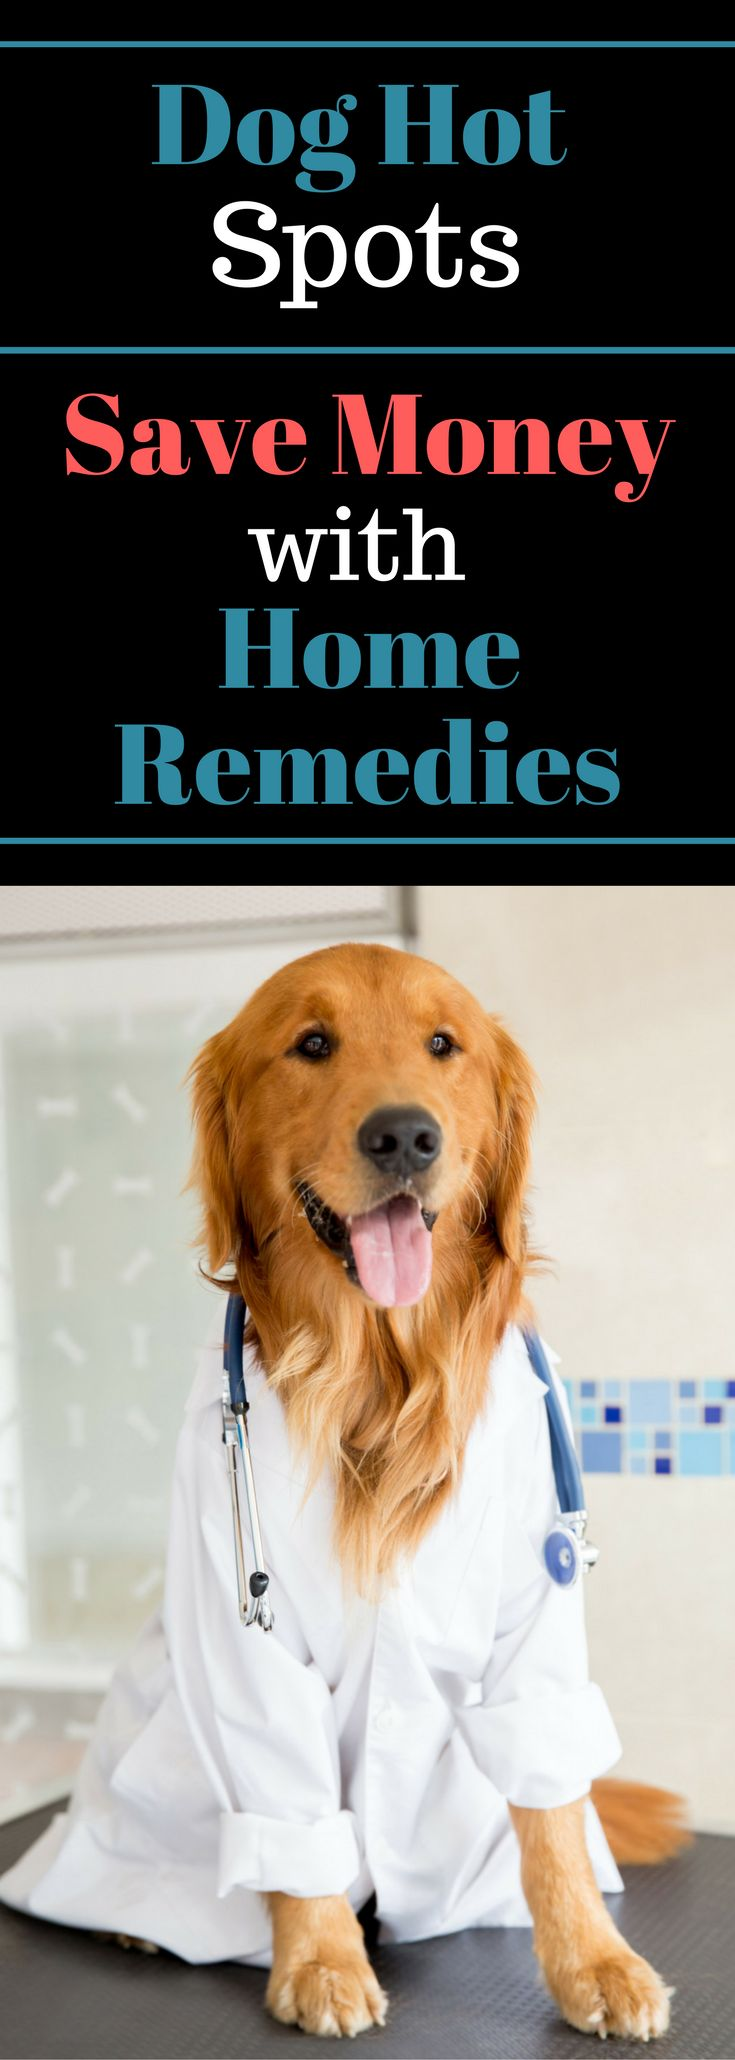 Dog Hot Spots - Save Money with Home Remedies